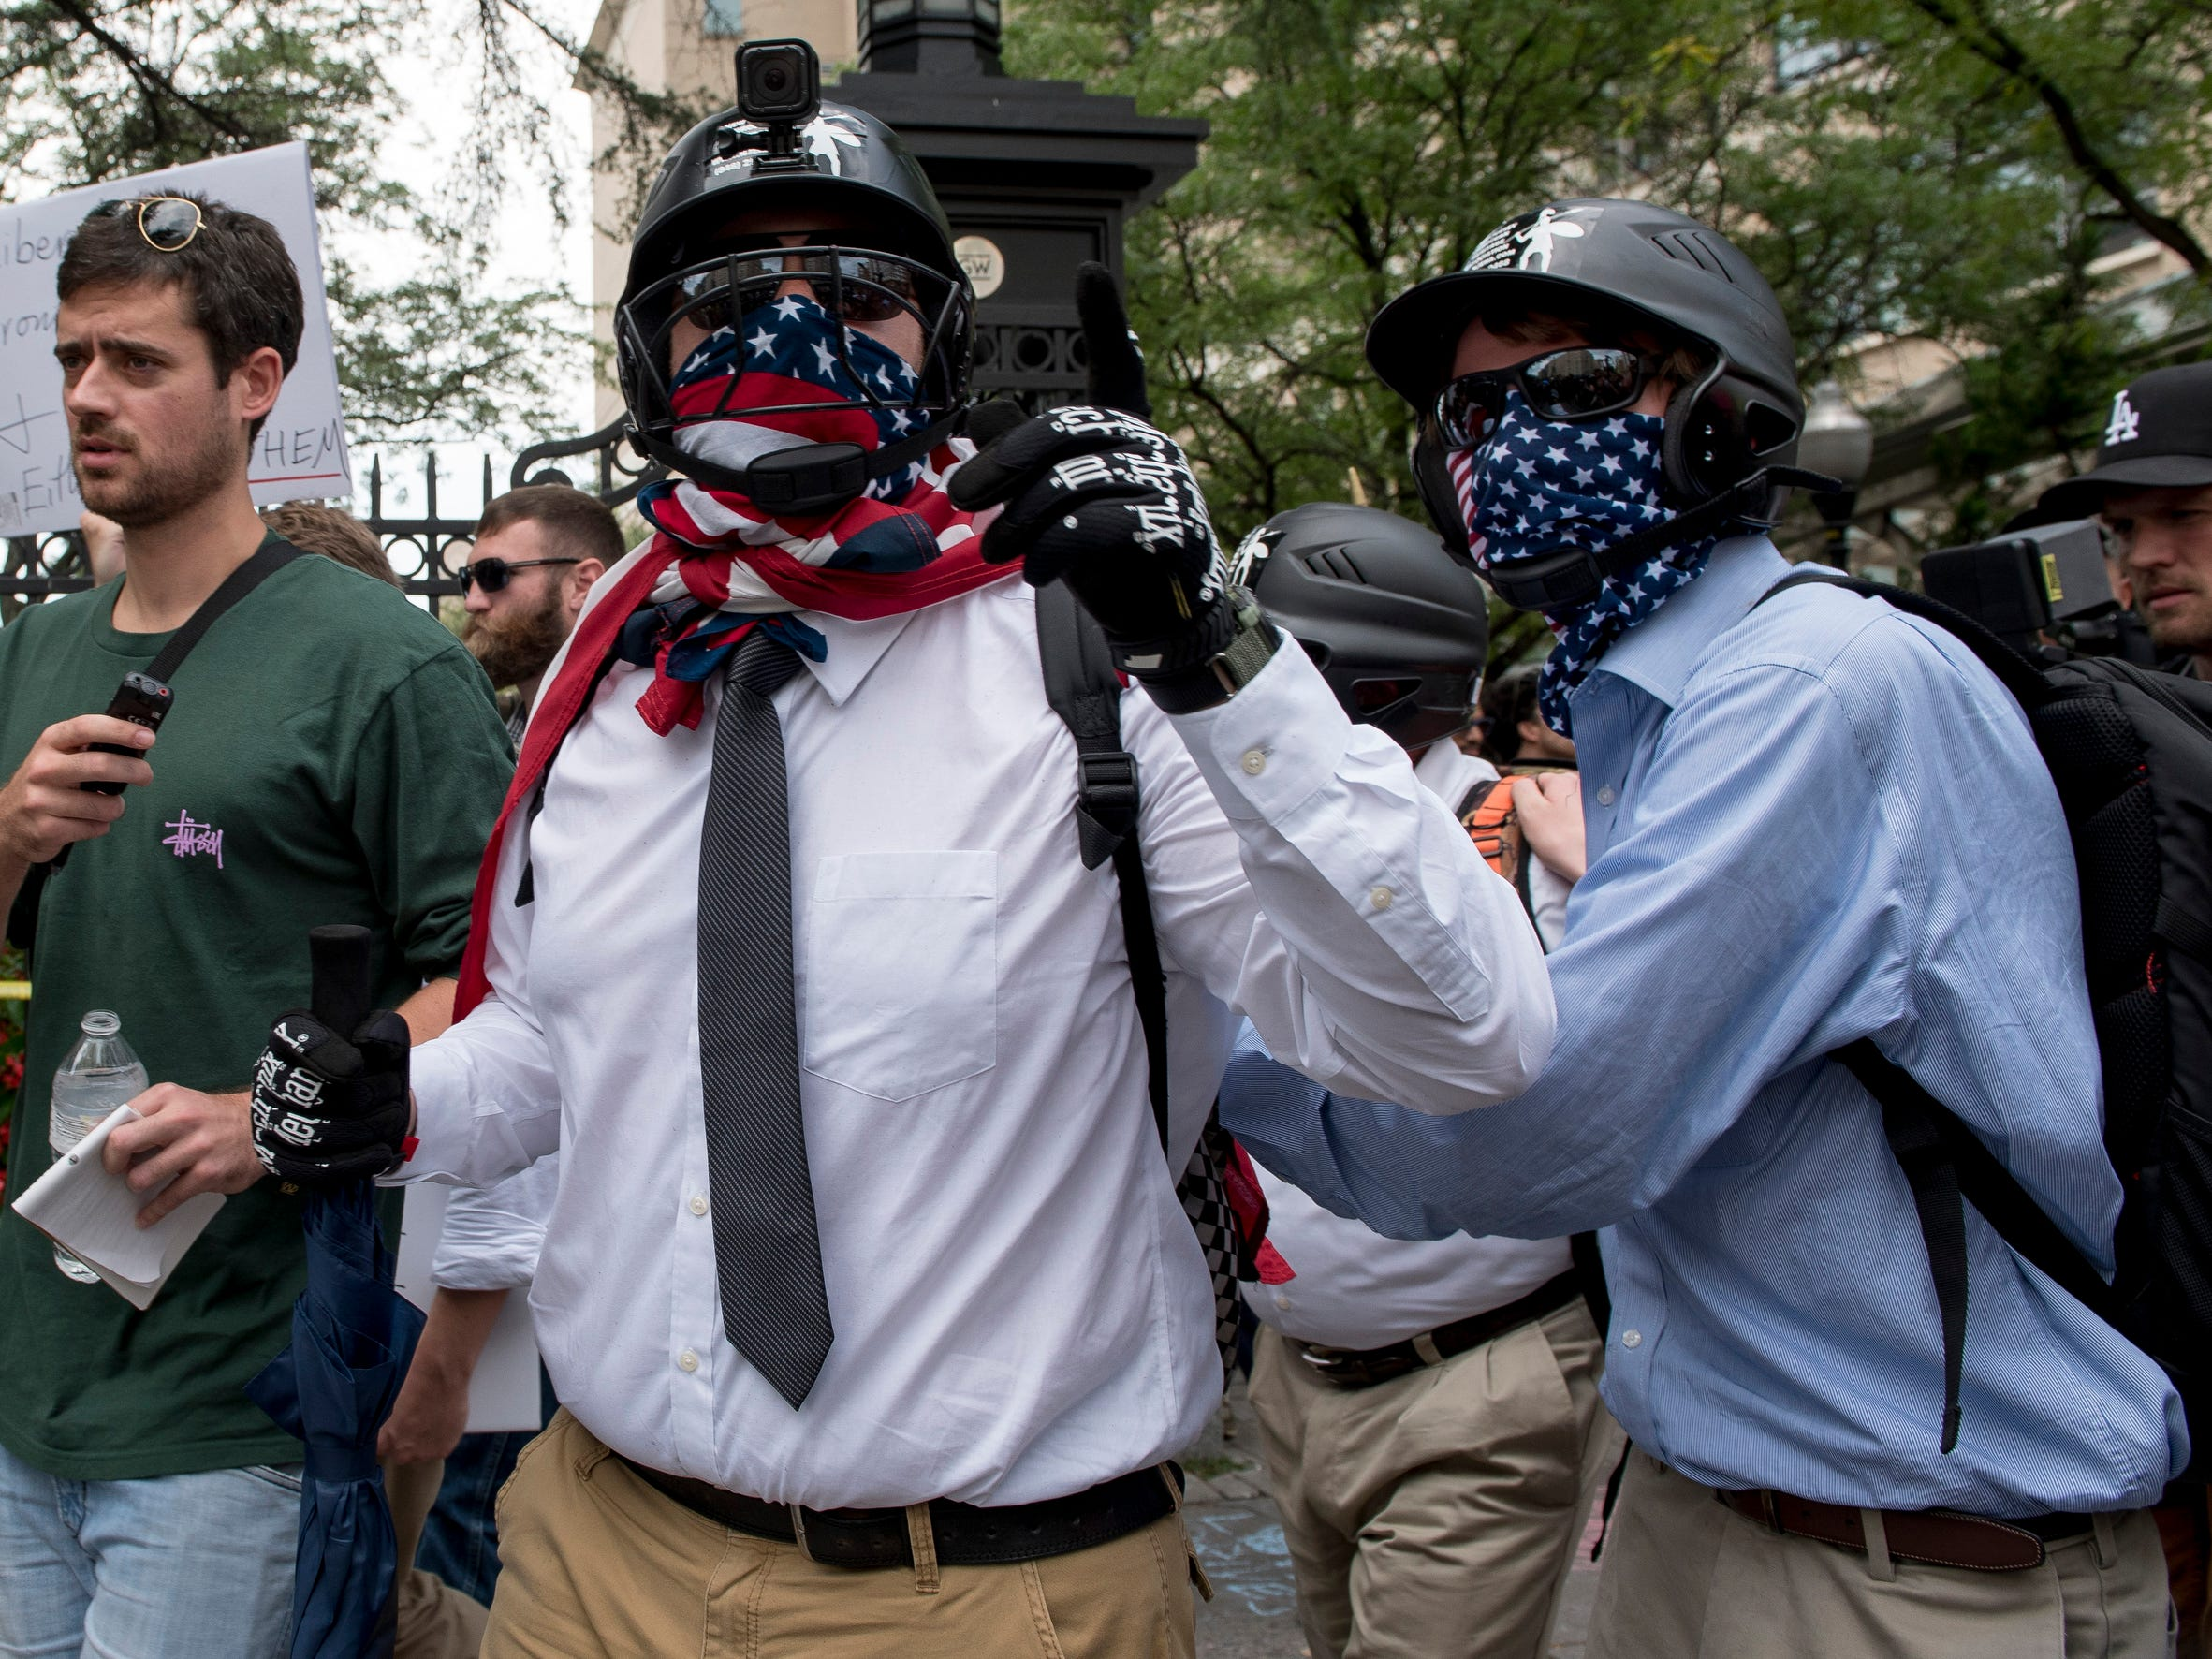 Some white nationalists arrive near the Foggy Bottom metro station during the Unite the Right rally on Aug. 12, 2018 in Washington.